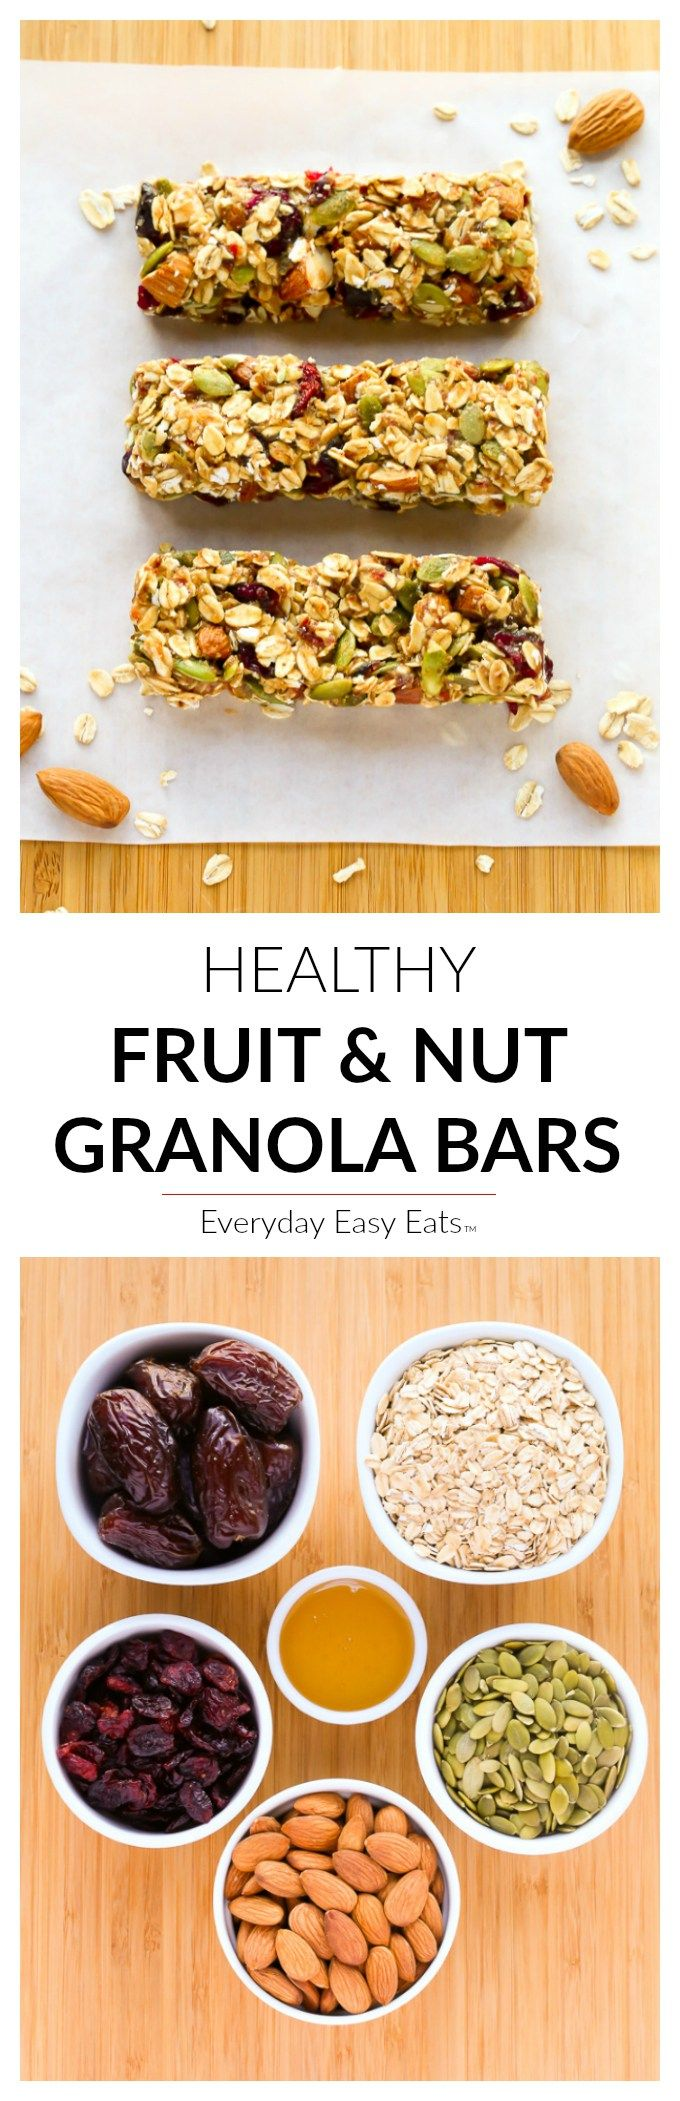 Easy Crispy Fruit And Nut Granola Bars Recipe — Dishmaps